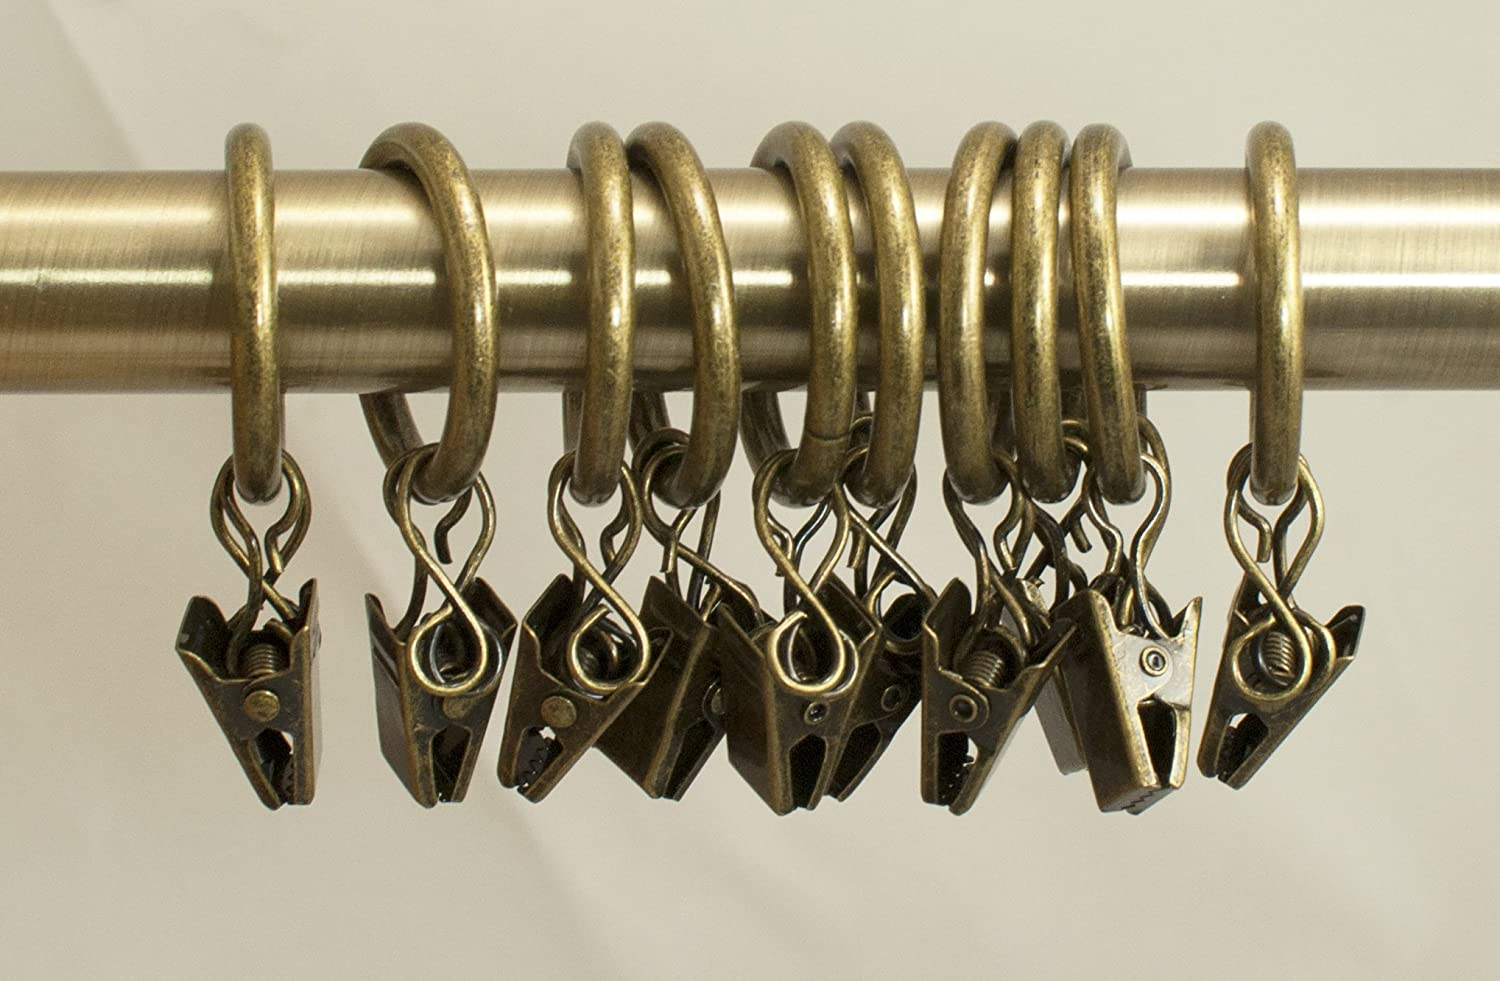 White curtain rings with clips - Amazon Com Urbanest Set Of 10 1 Inch Metal Curtain Rings With Clips And Eyelets Fits Up To 3 4 Inch Rod Antique Brass Home Kitchen